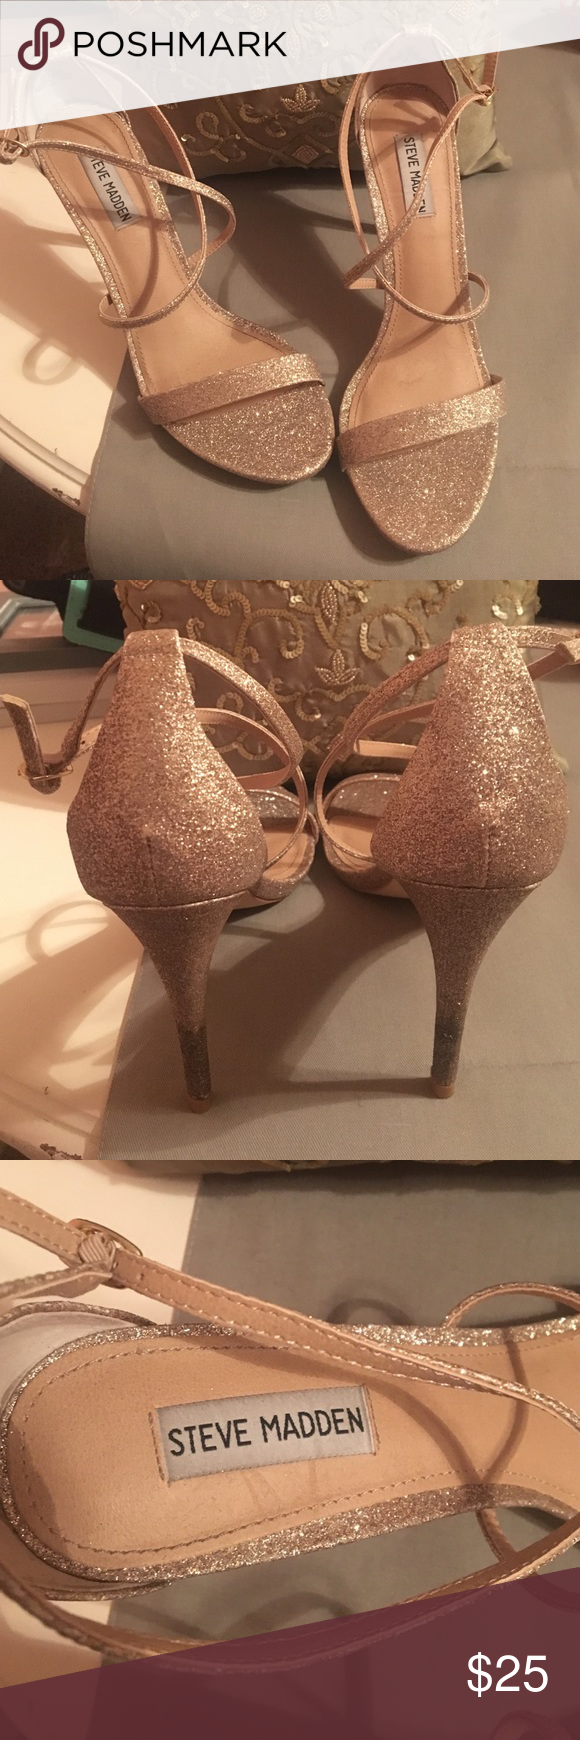 Glittery Steven Madden heels Used only once for a wedding. Is in mint condition and has a little bit of dirt at the end of the heel on both shoes. Steve Madden Shoes Heels